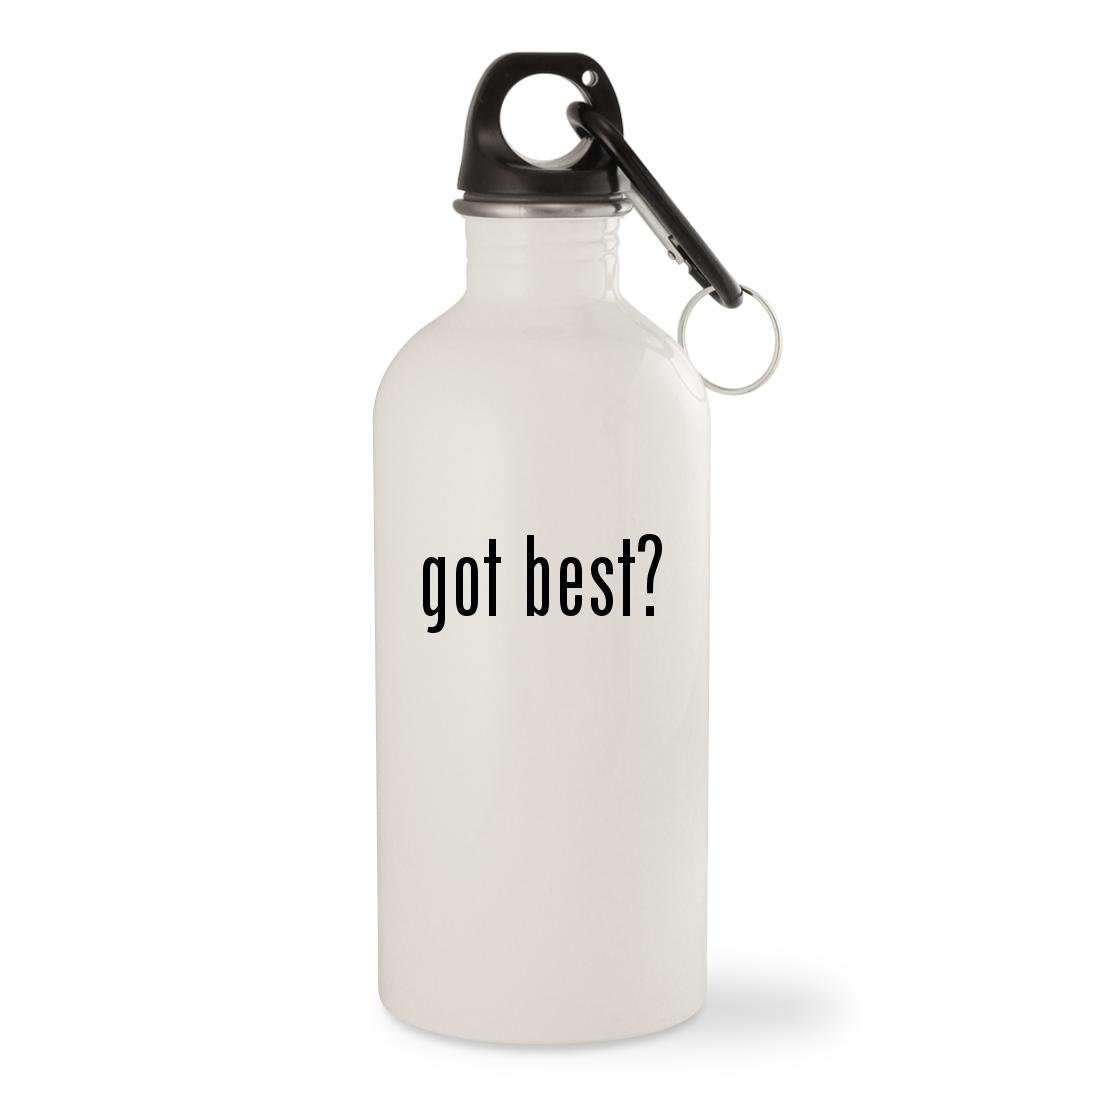 got ? - White 20oz Stainless Steel